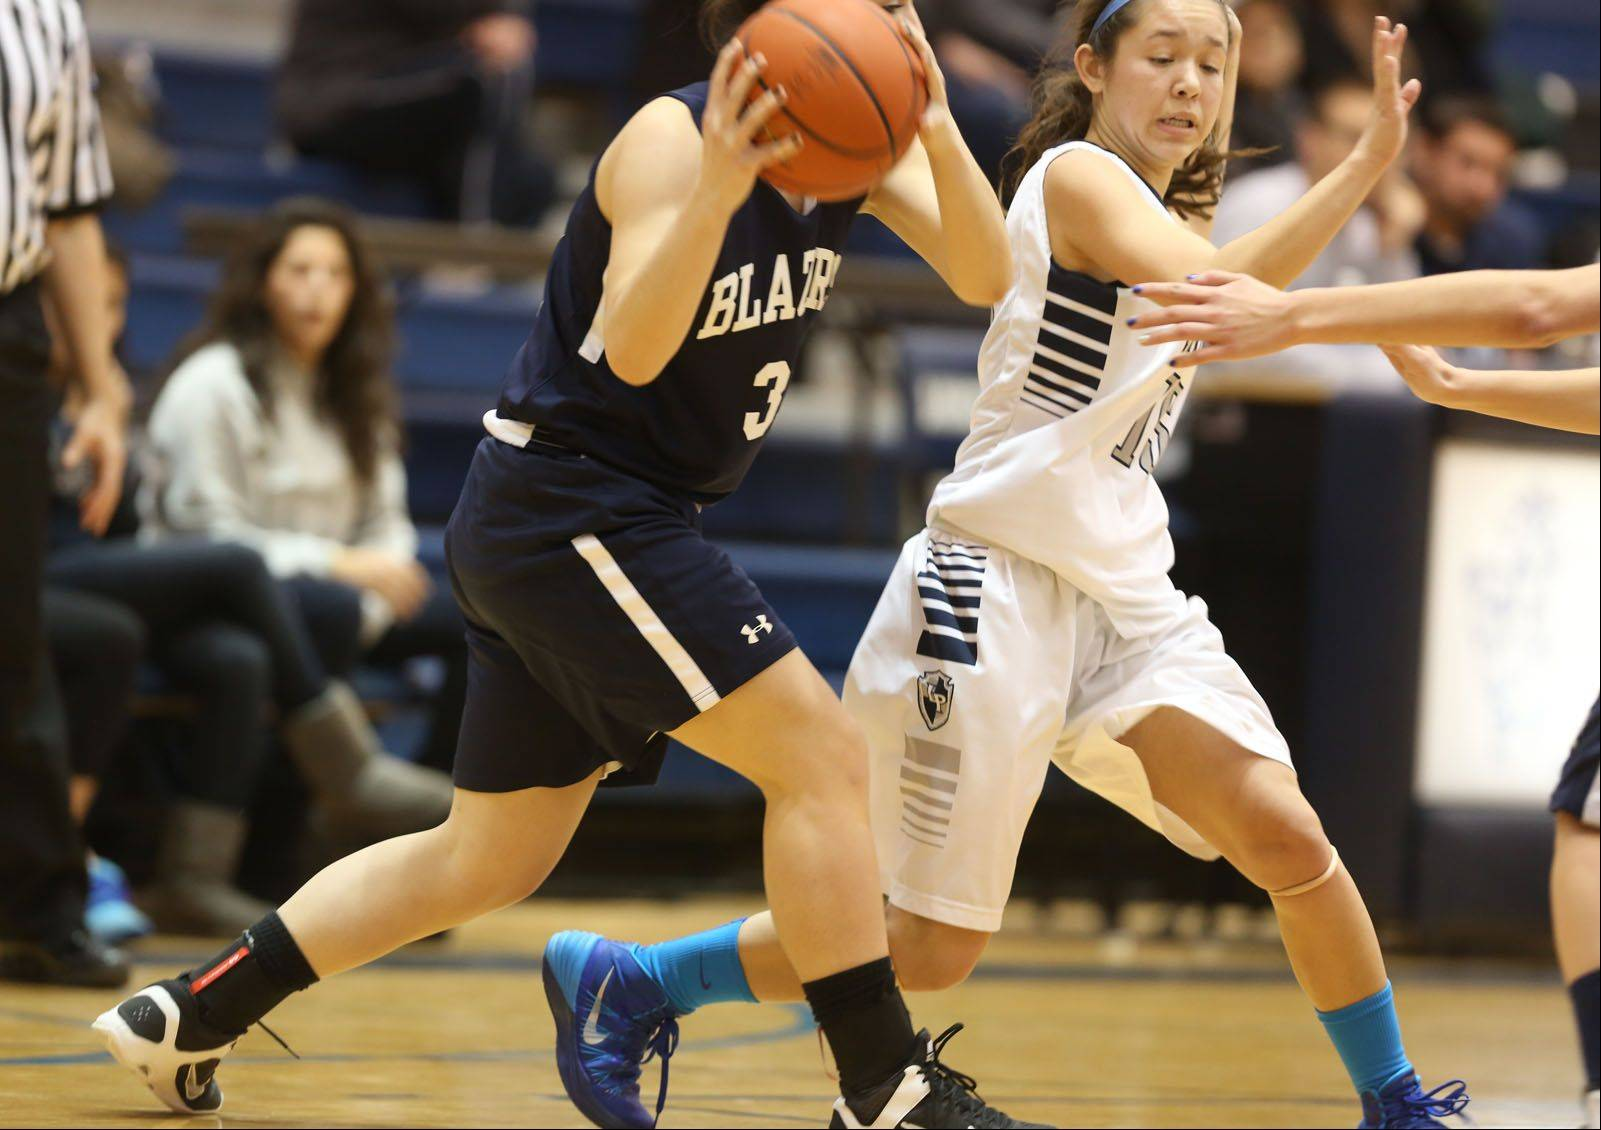 Images from the Lake Park vs. Addison Trail girls basketball game on Friday, Jan. 3, 2014.